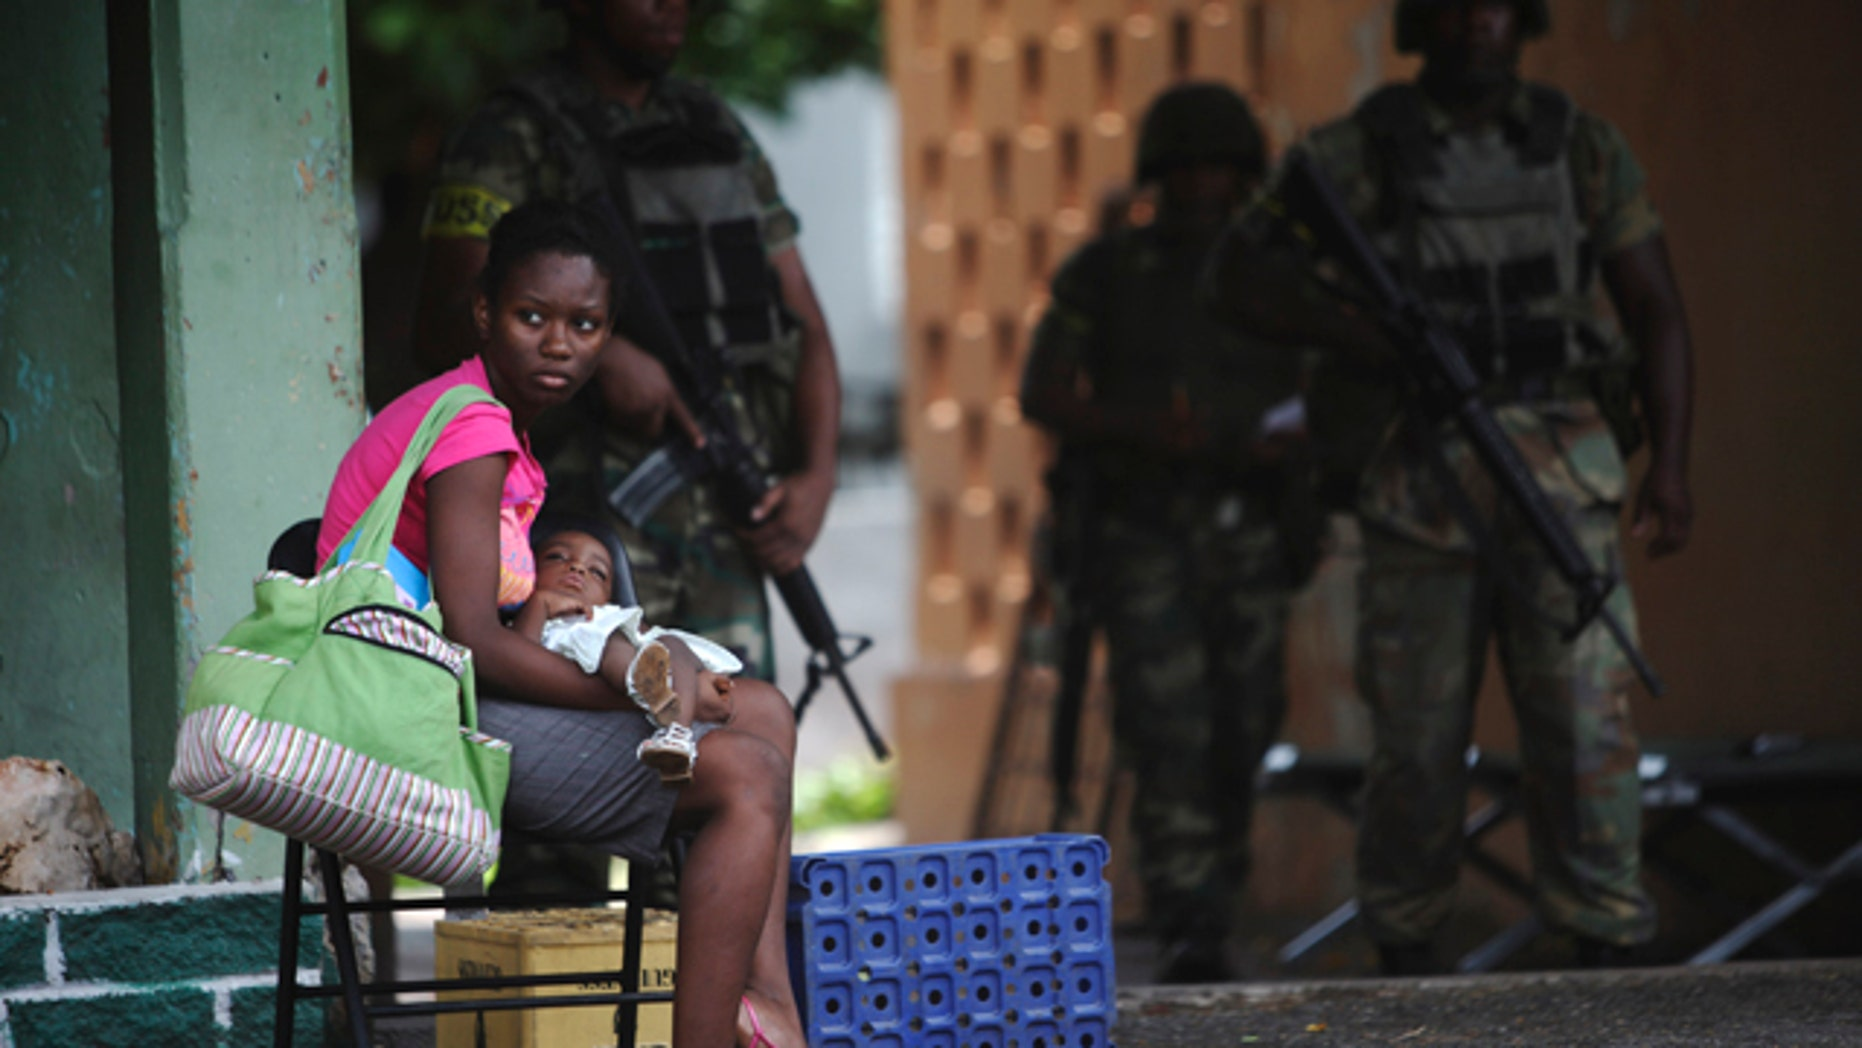 May 27: A woman sits with her daughter as soldiers stand guard in the Tivoli Gardens neighborhood of Kingston, Jamaica.